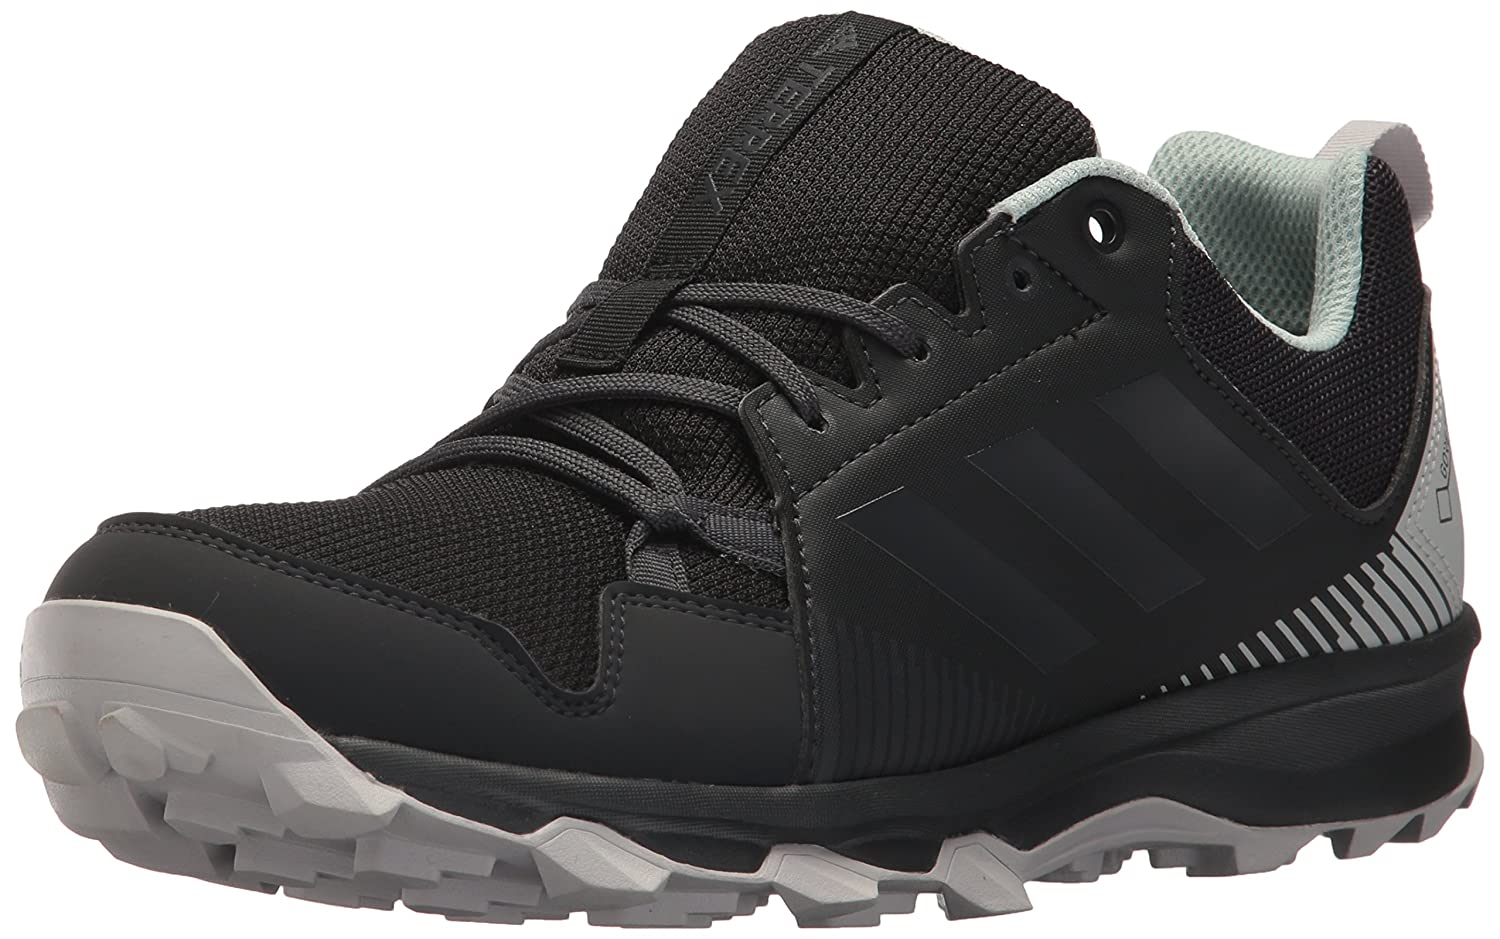 adidas outdoor Women's Terrex Tracerocker GTX W Trail Running Shoe B072YT5X8V 6 B(M) US|Black/Carbon/Ash Green